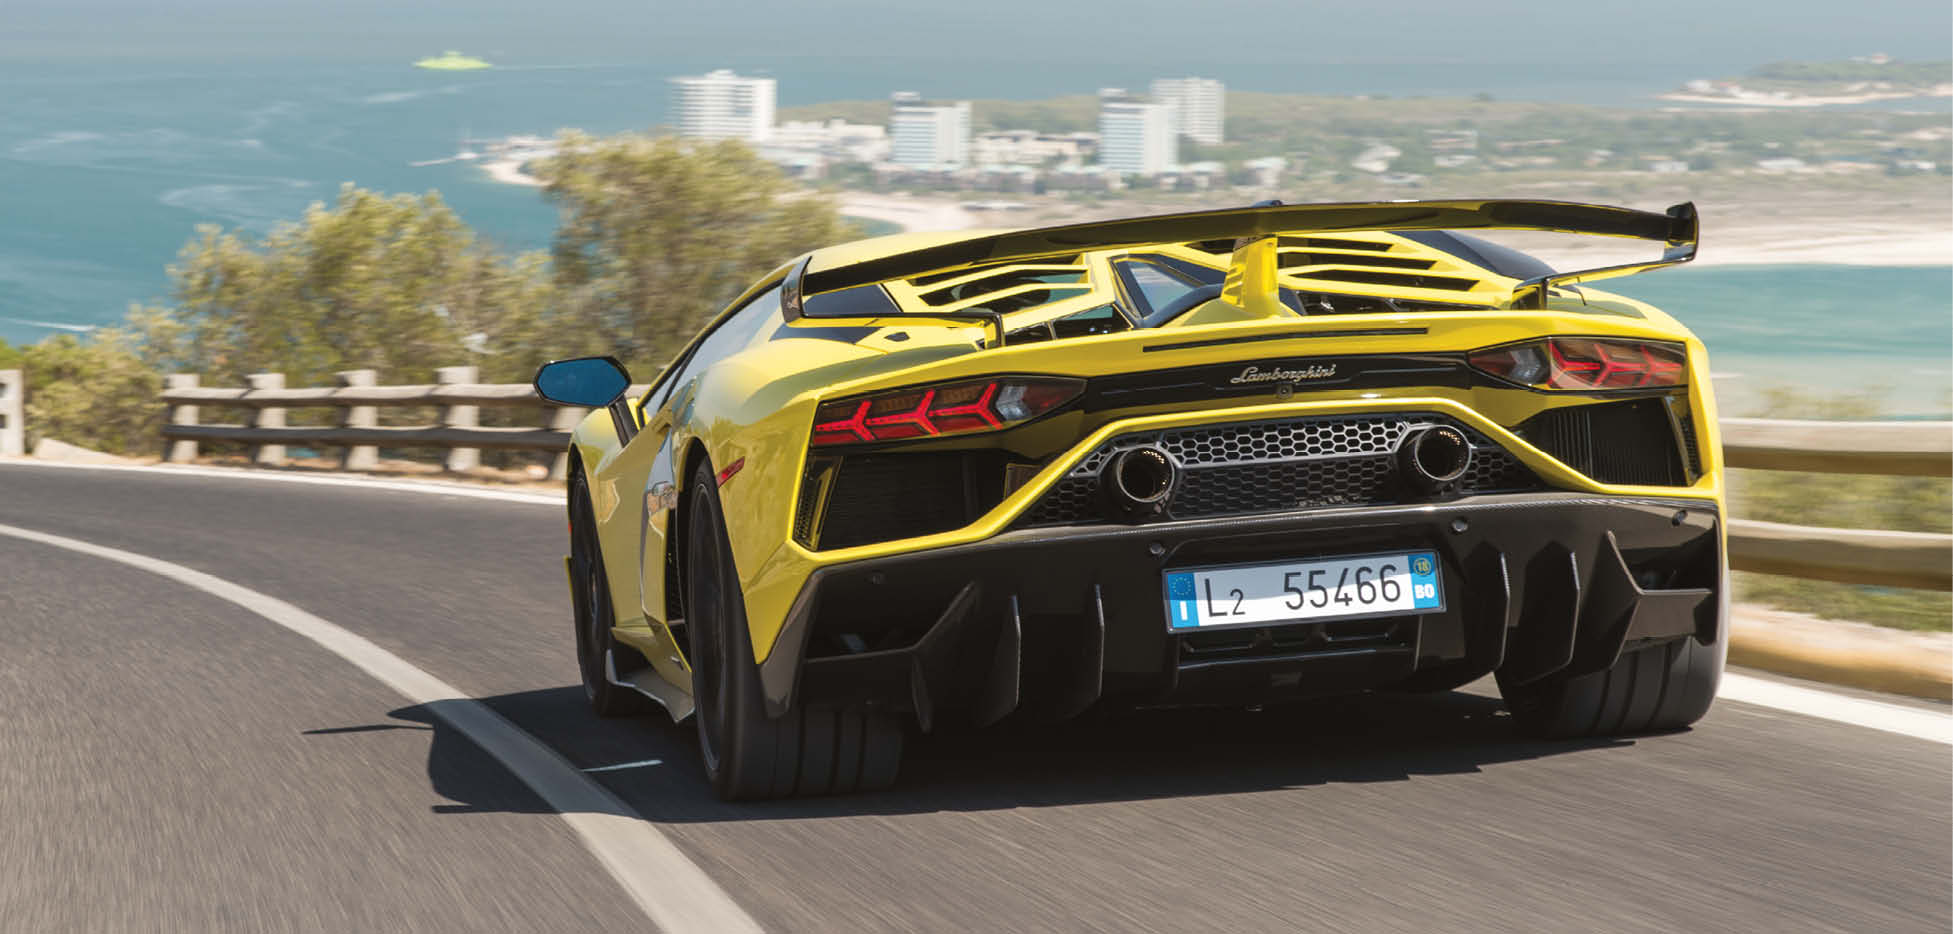 With 759bhp and hardly any peripheral vision, the Aventador is a challenge